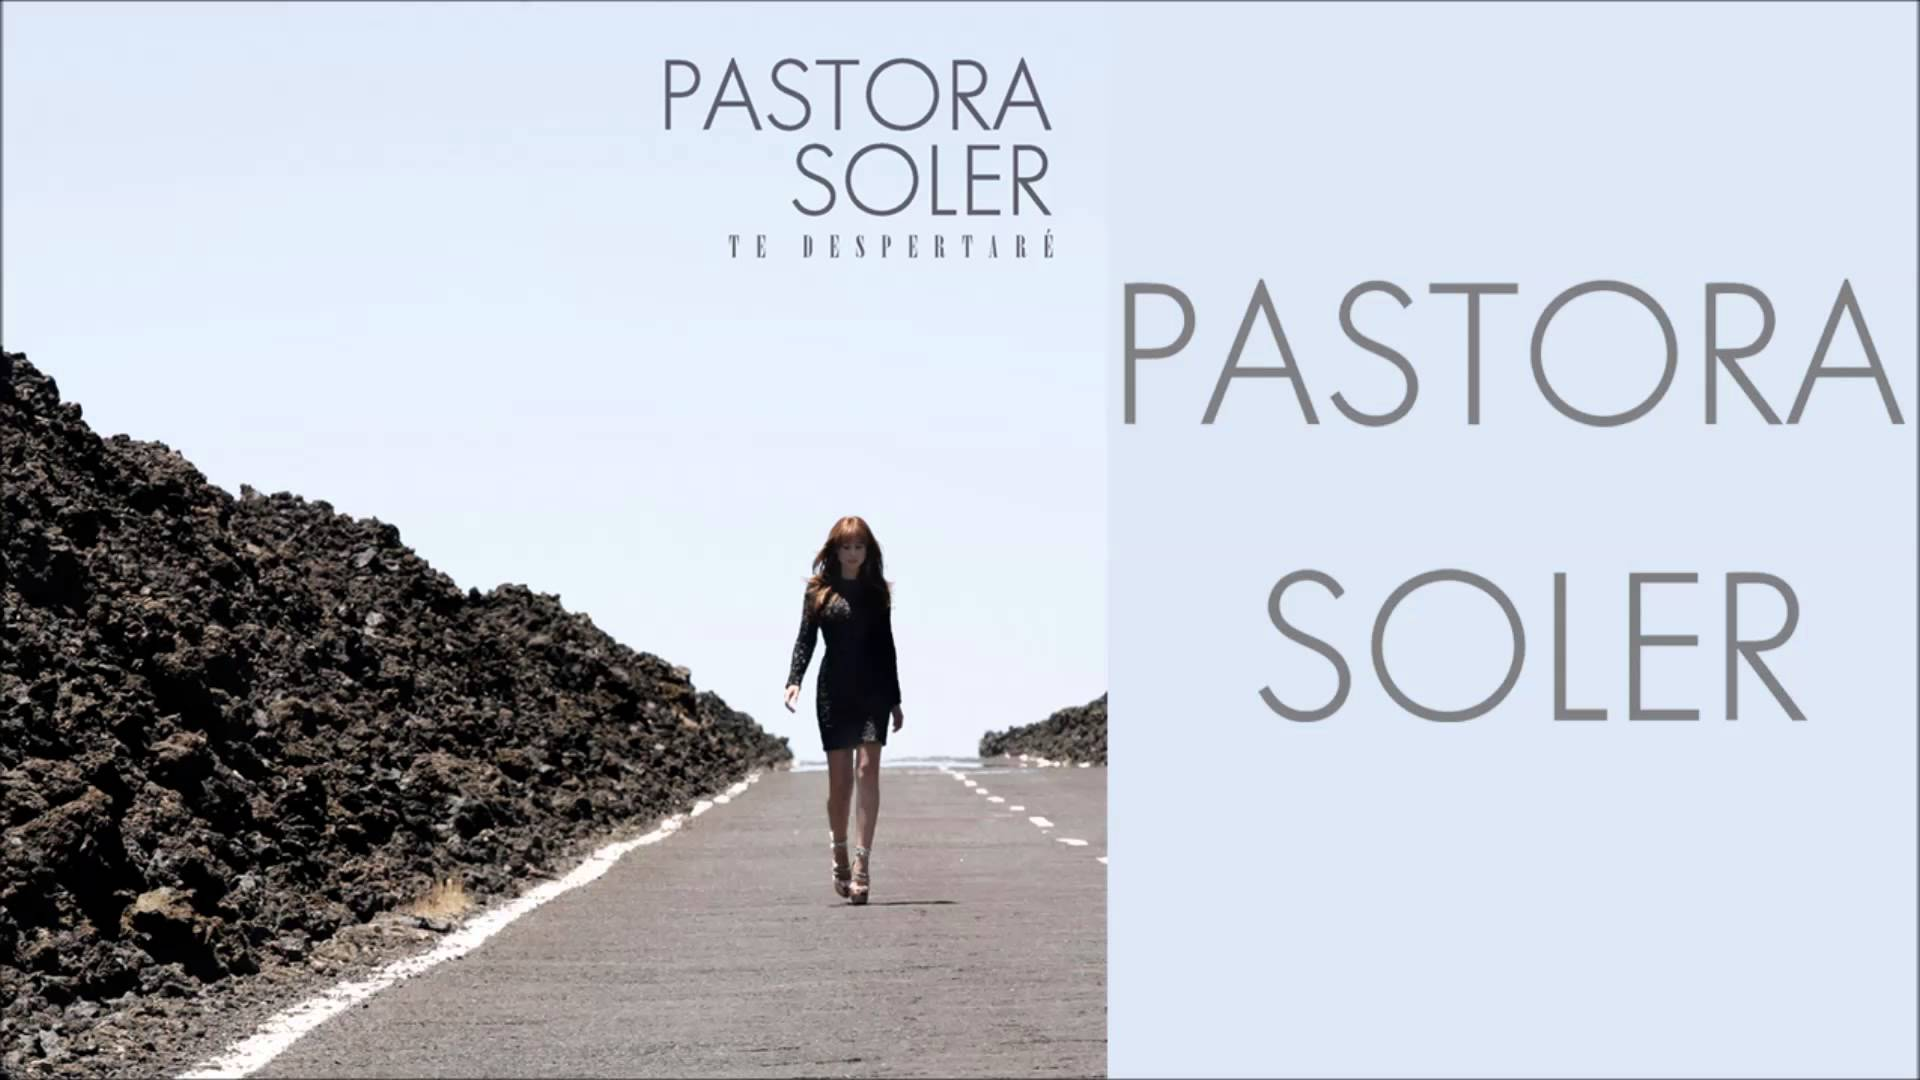 «Te despertaré» nuevo single de Pastora Soler